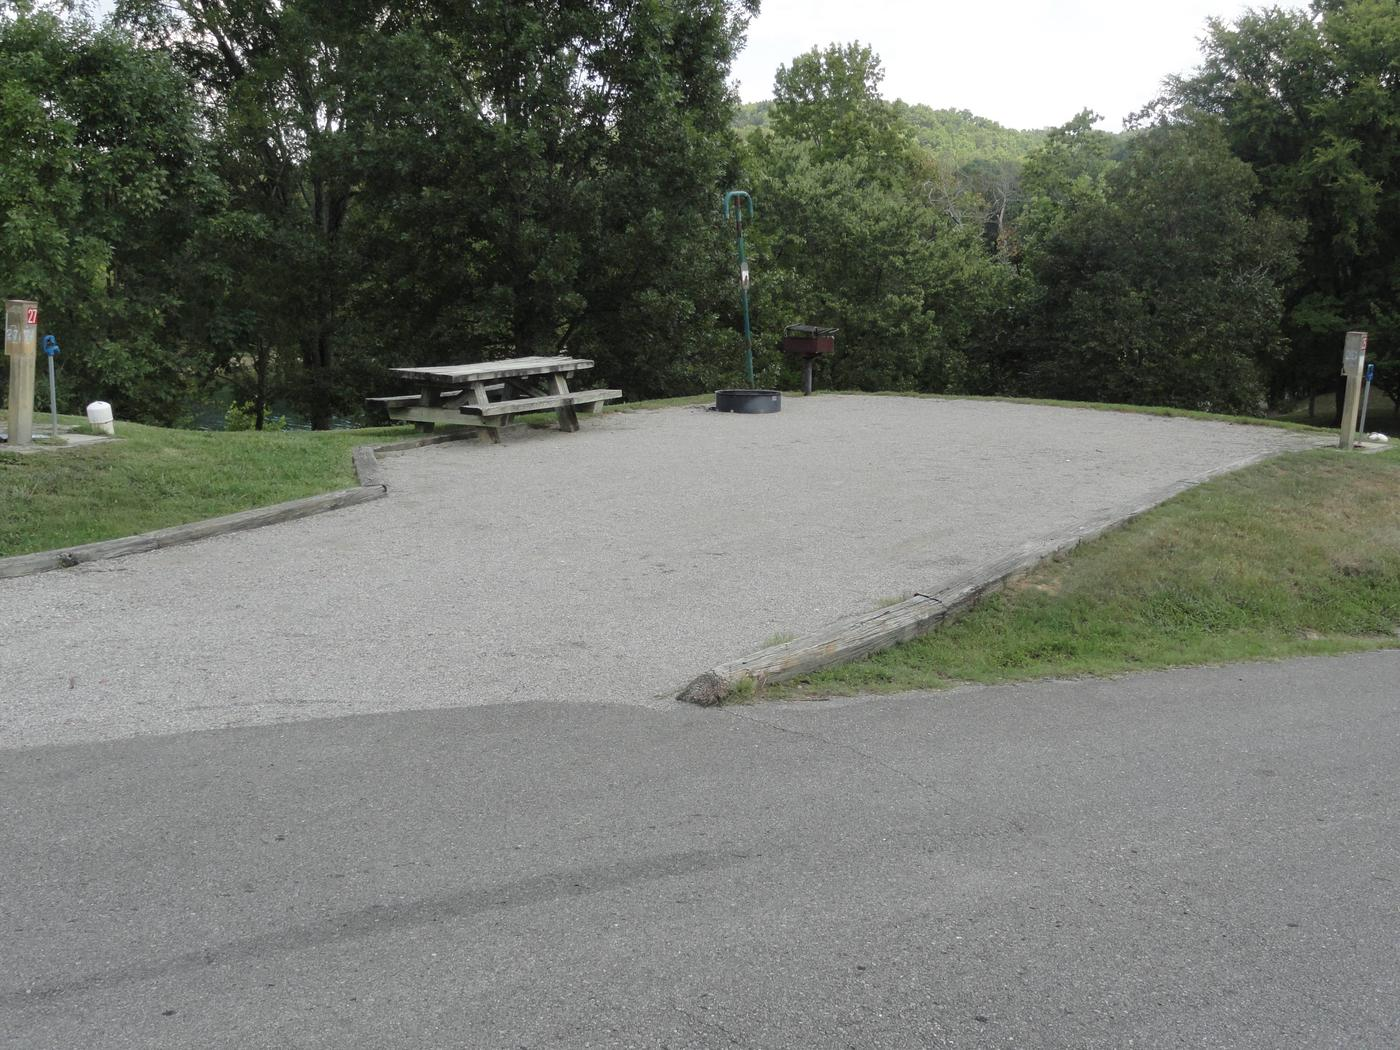 WILLOW GROVE CAMPGROUND SITE #25